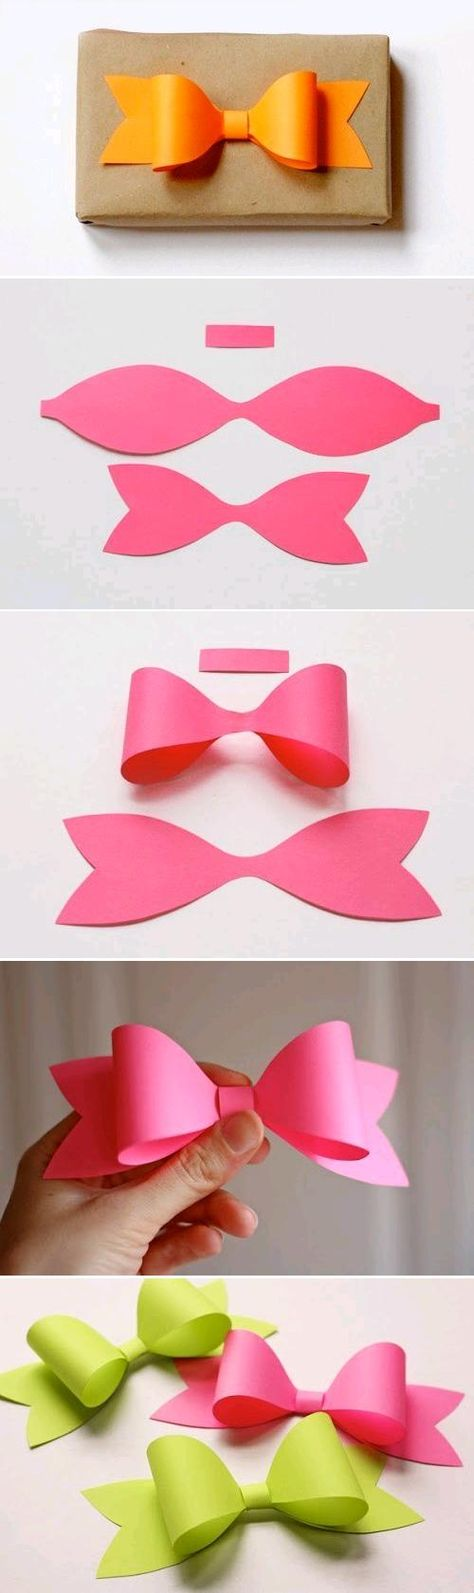 DIY Paper Bows - easy + lovely